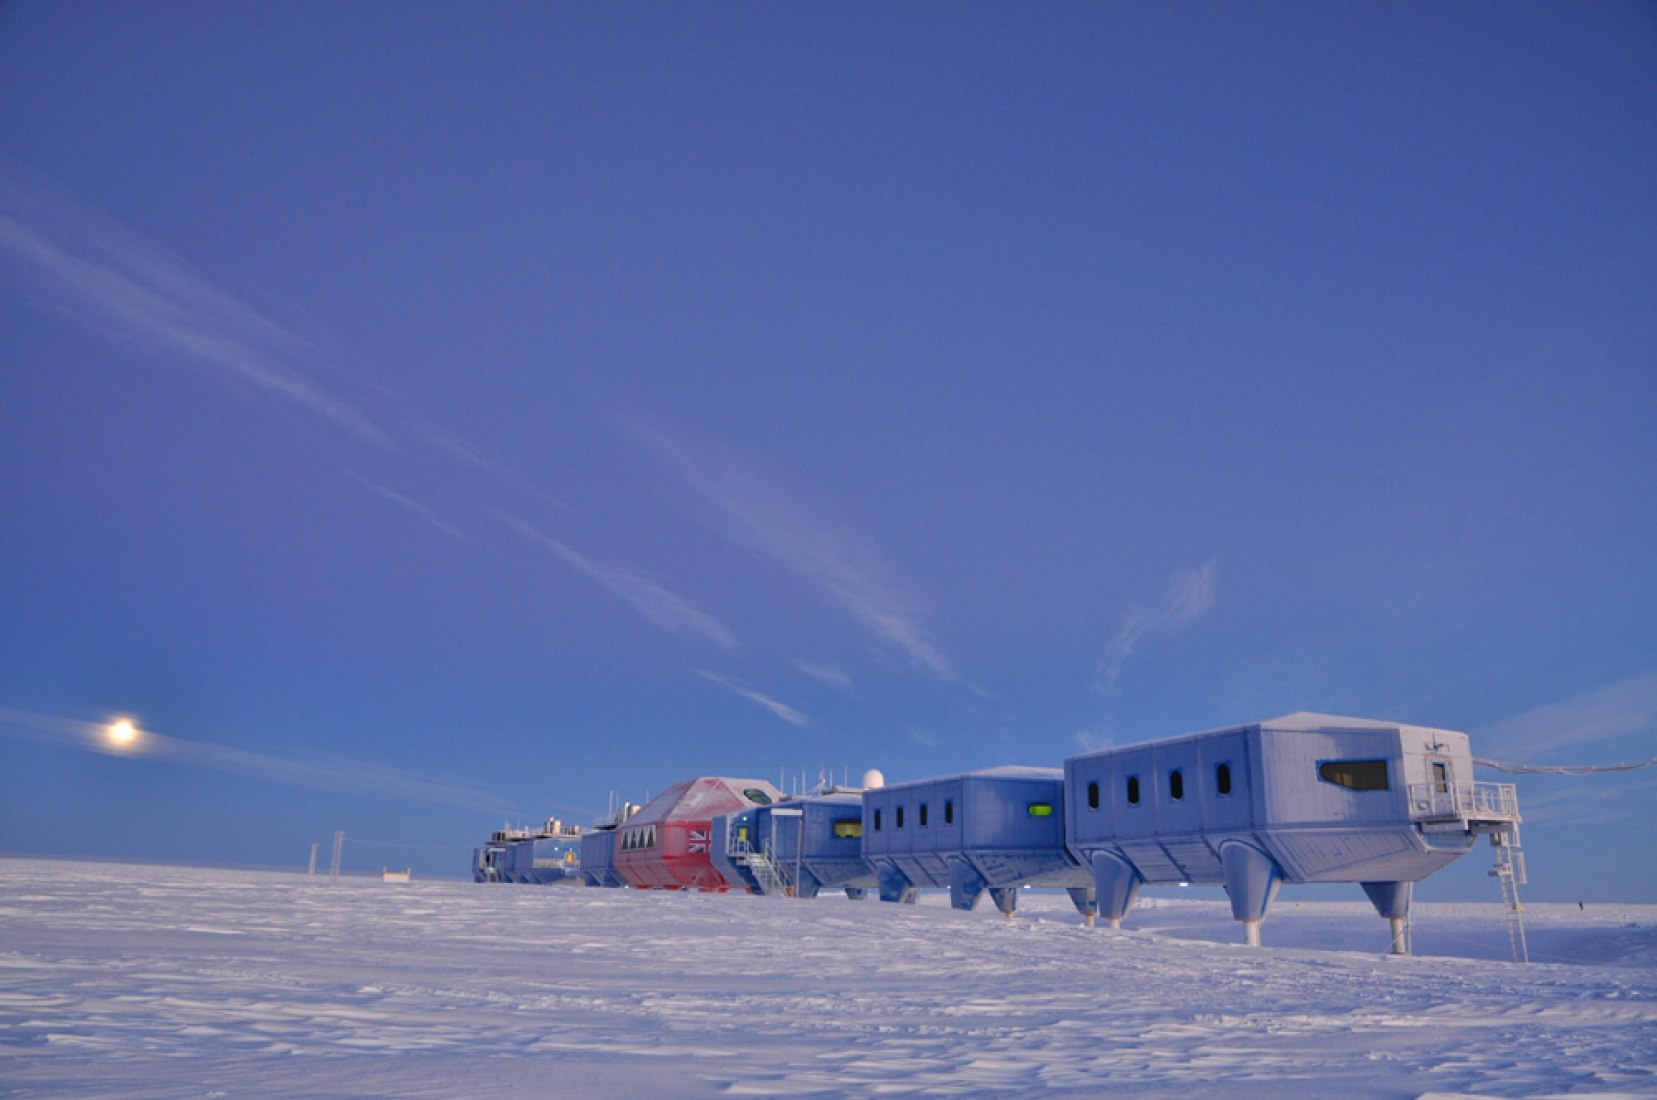 Halley VI Antarctic Research Station, by Hugh Broughton Architects.